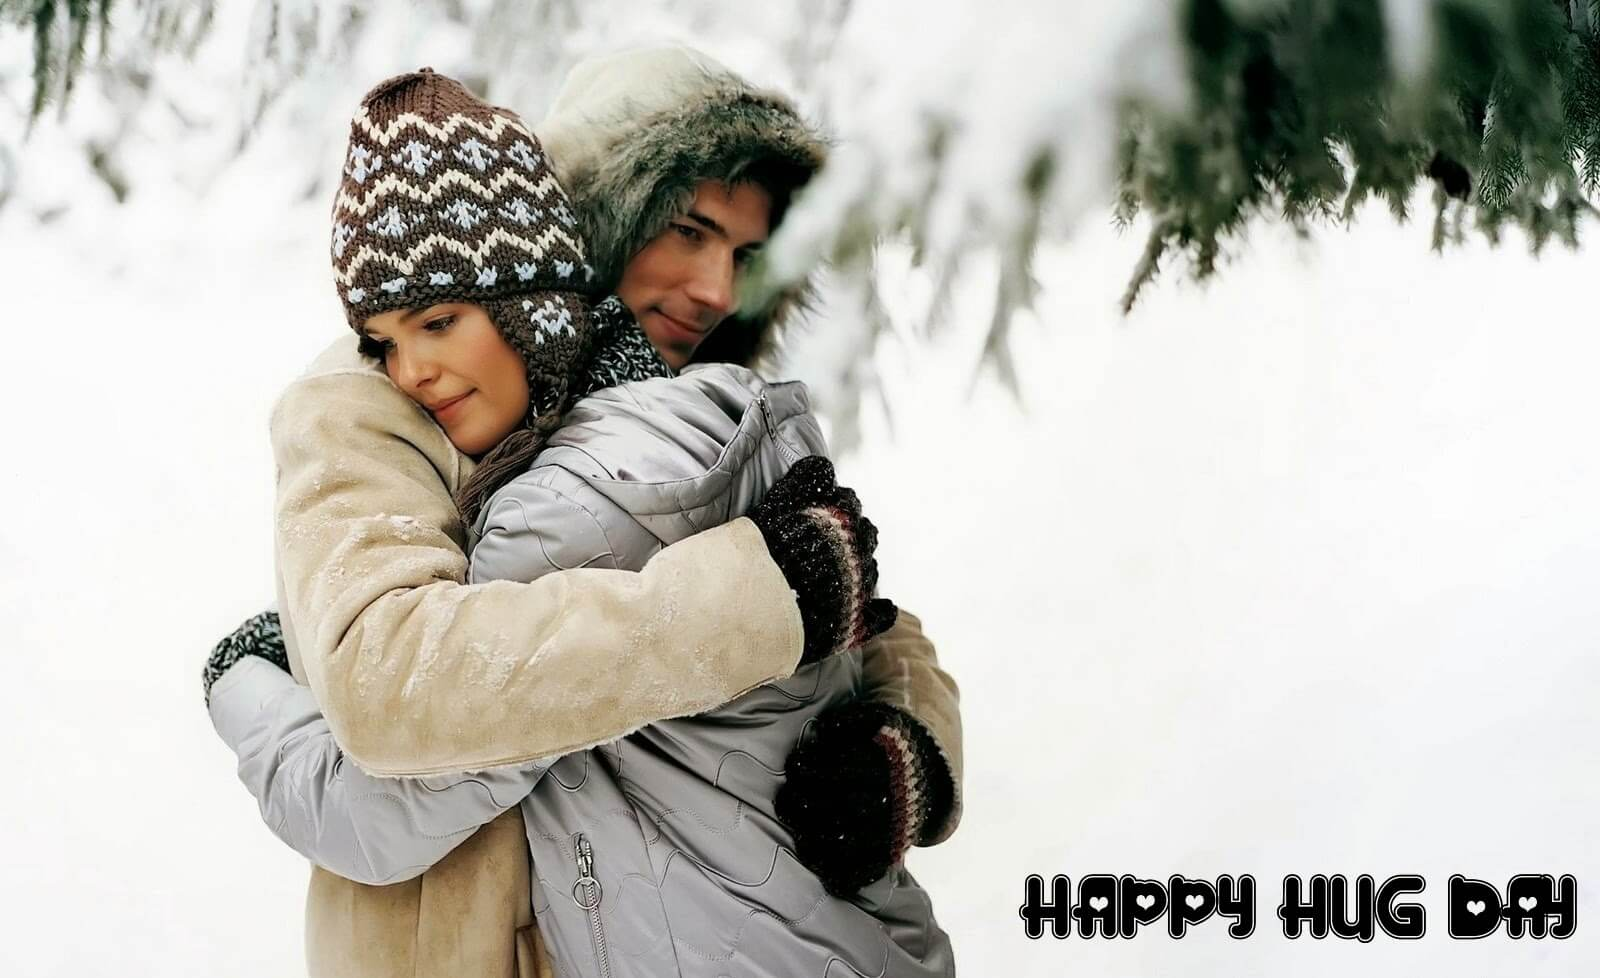 Happy Hug Day HD Wallpapers